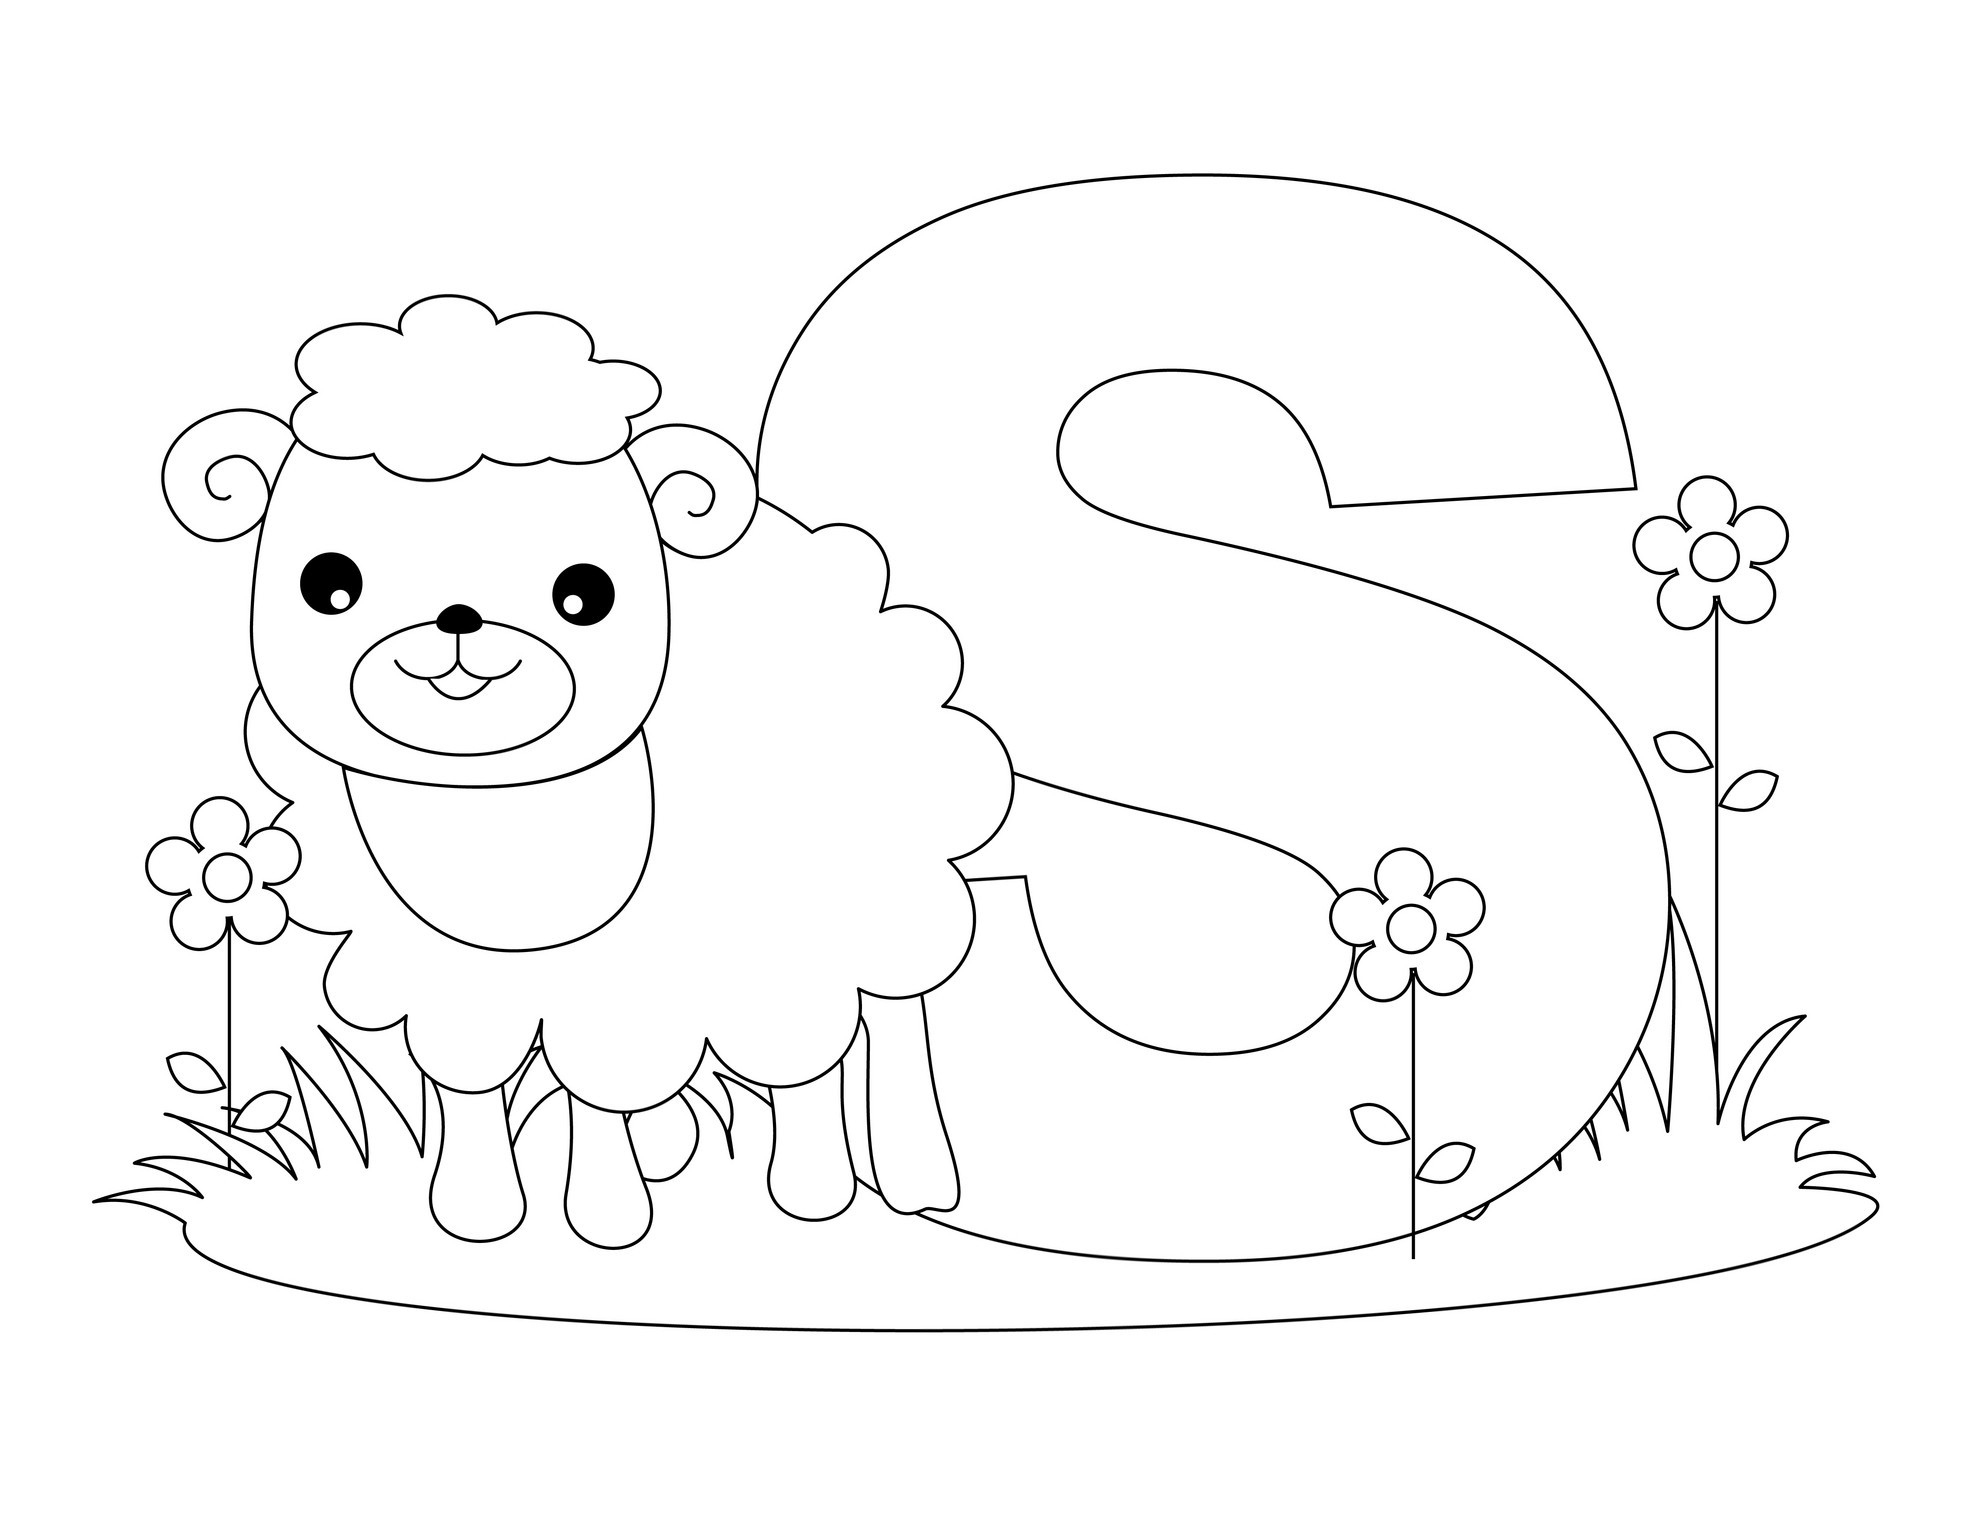 coloring pages for alphalbet - photo#19